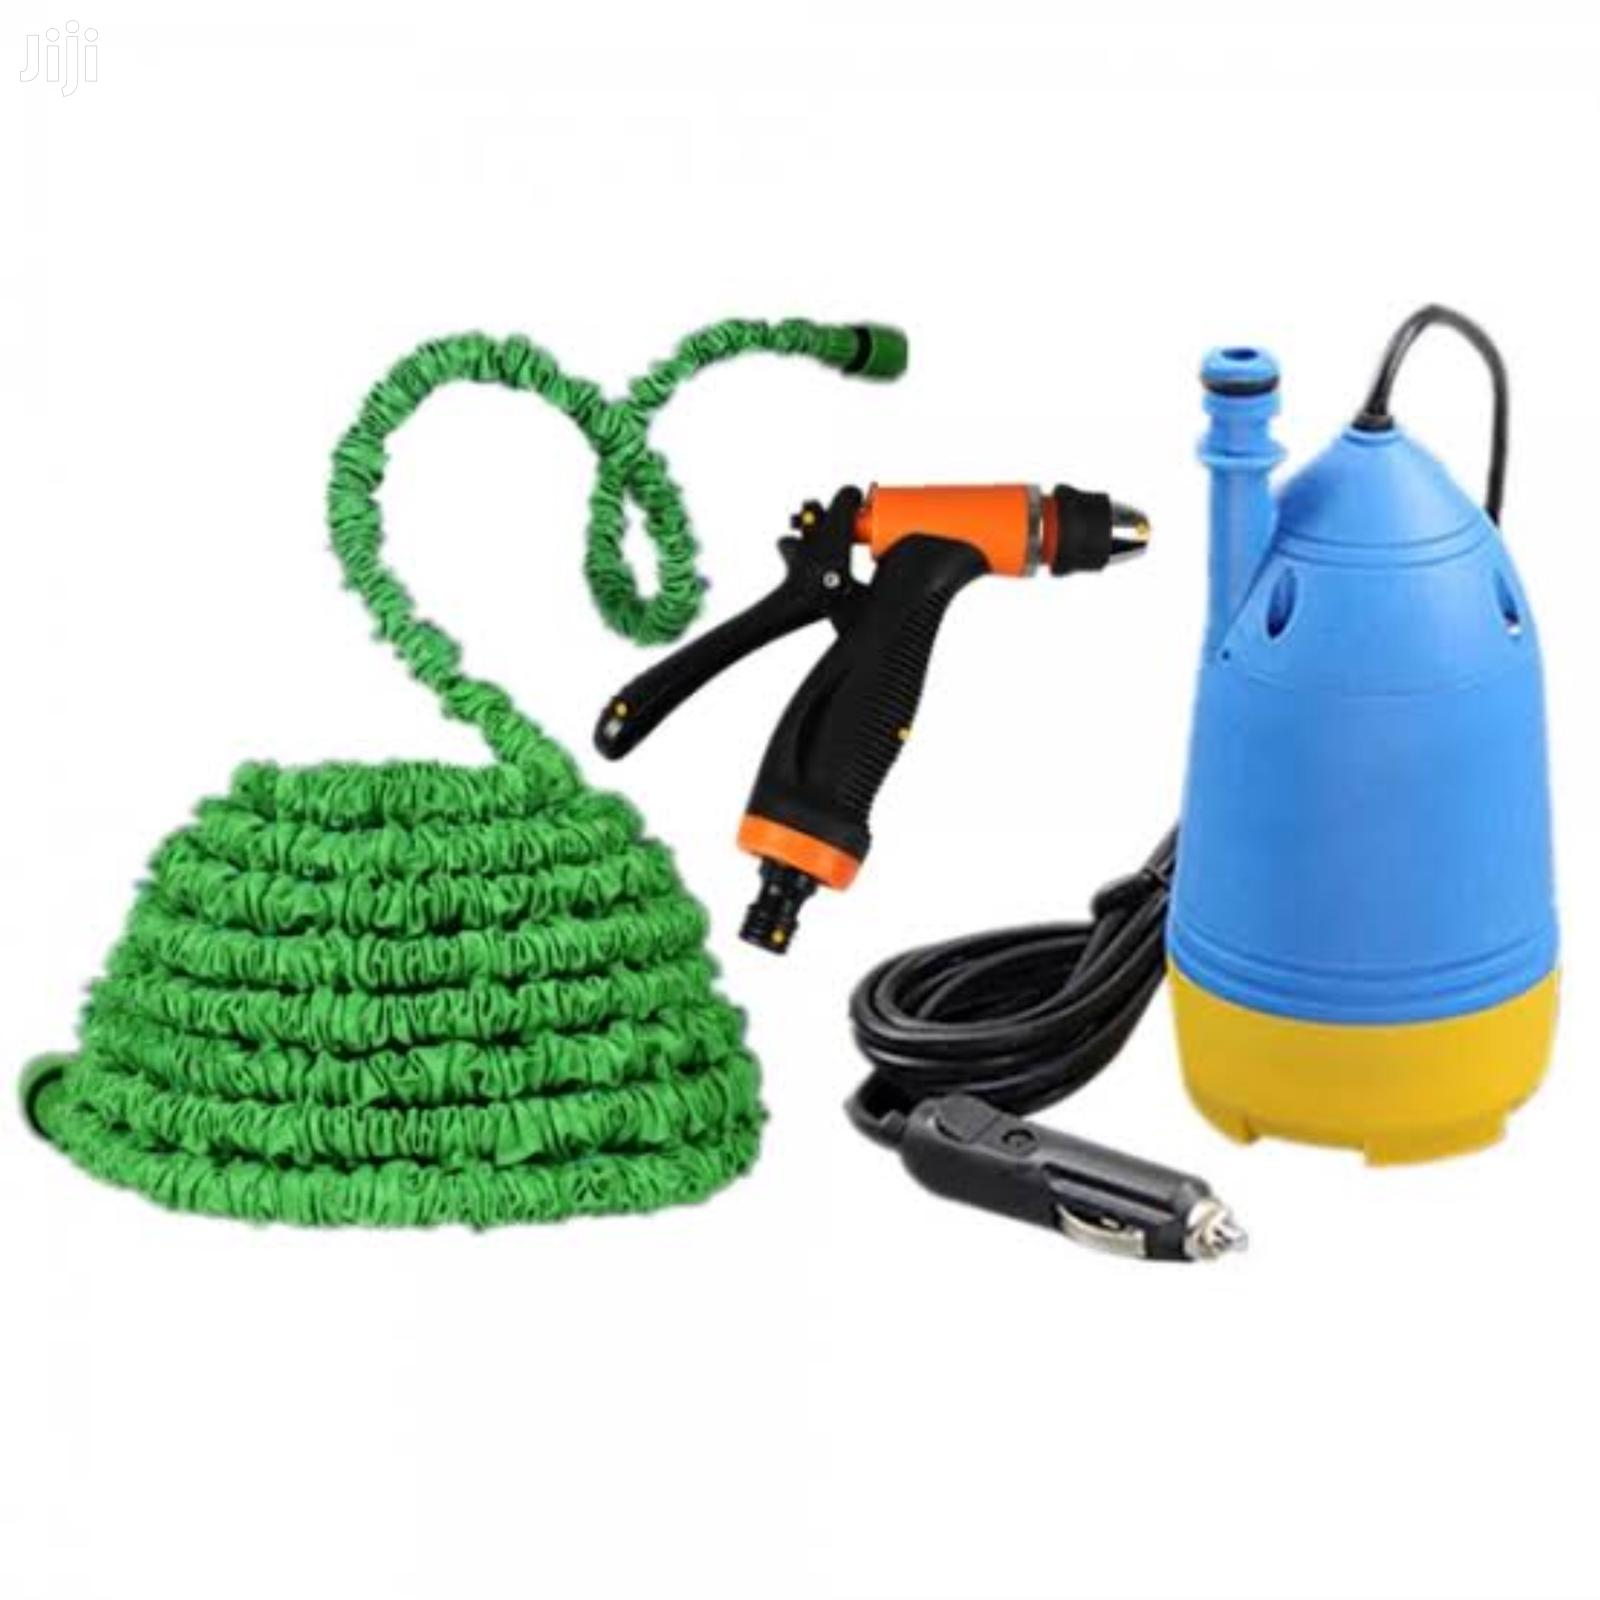 Portable Electric Car Wash Spray